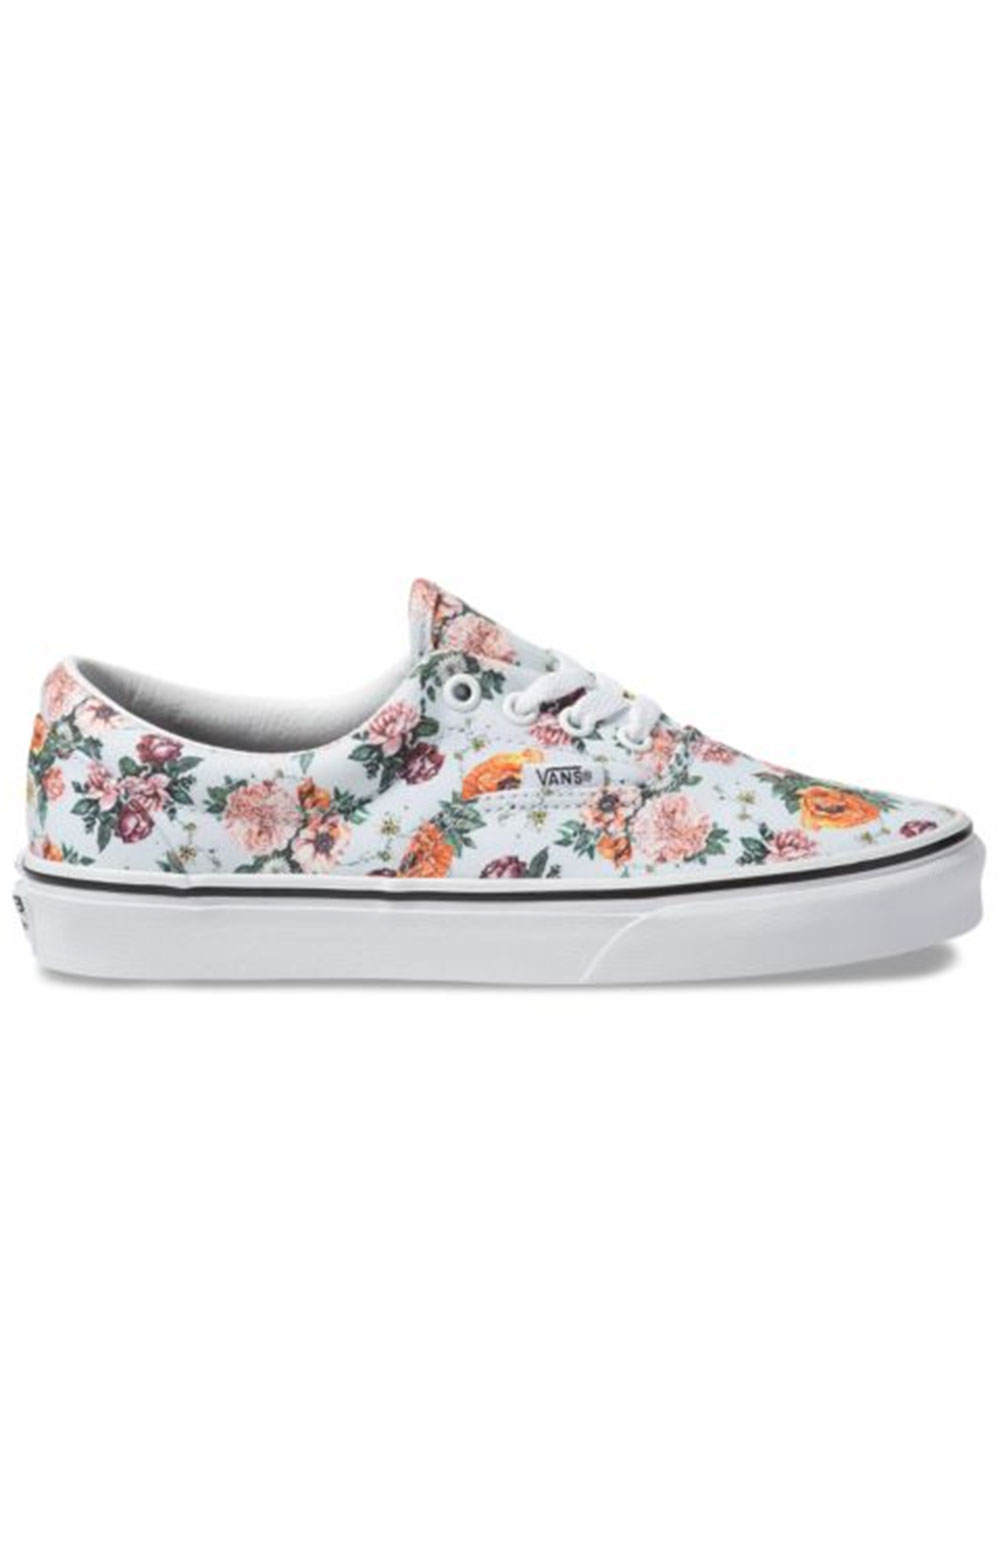 (BV4V3F) Garden Floral Era Shoe - True White